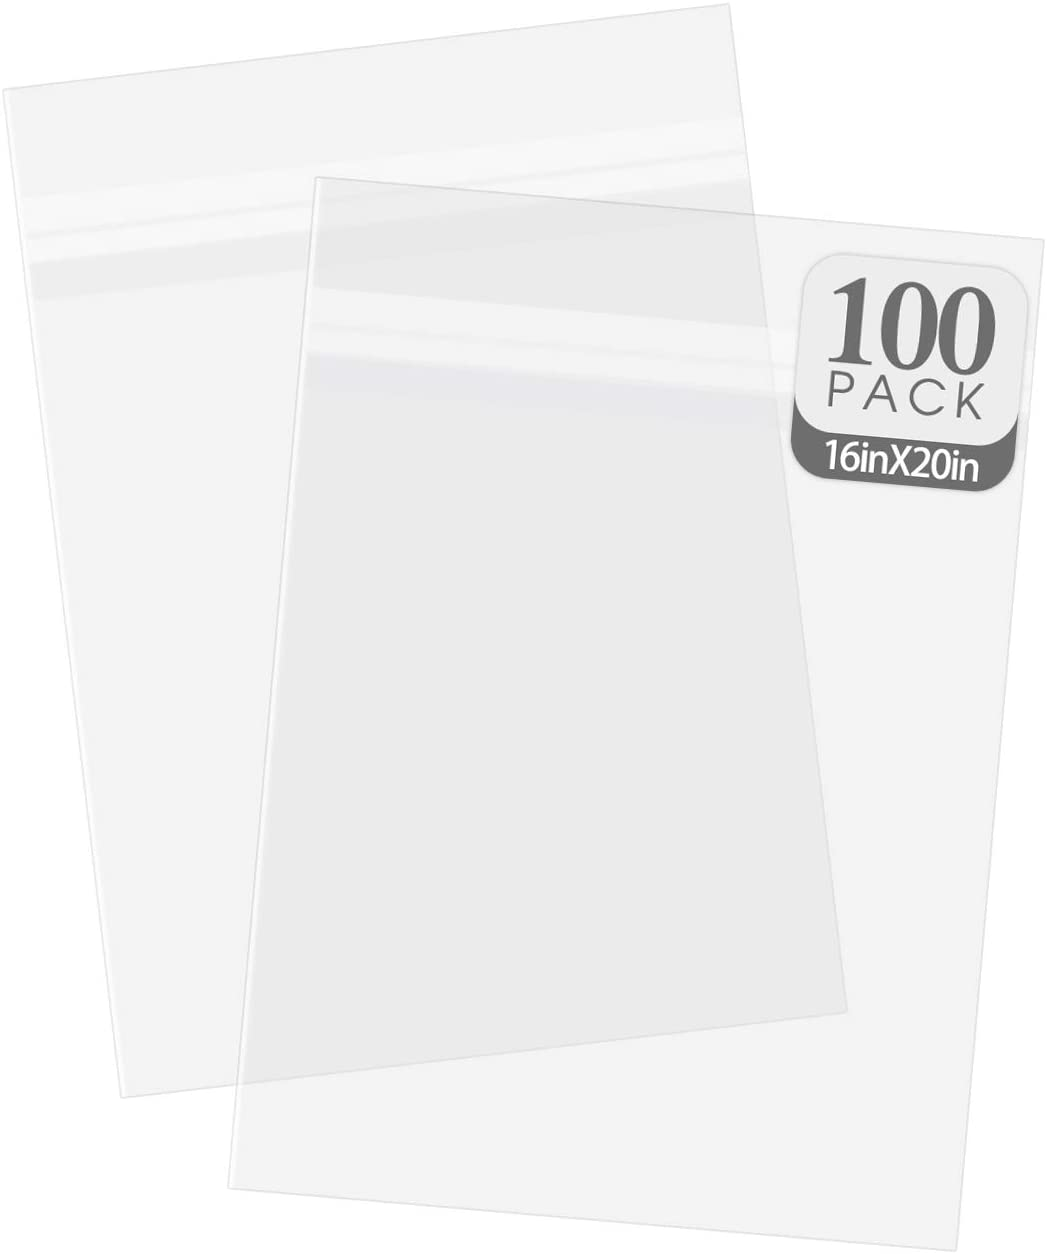 Golden State Art, Pack of 100, Acid-Free Crystal Clear Sleeves Storage Bags for Photo Prints Framing Mats Mattes (Bag Size: 16 3/8x 20 1/8 inches for 16x20 Mats)